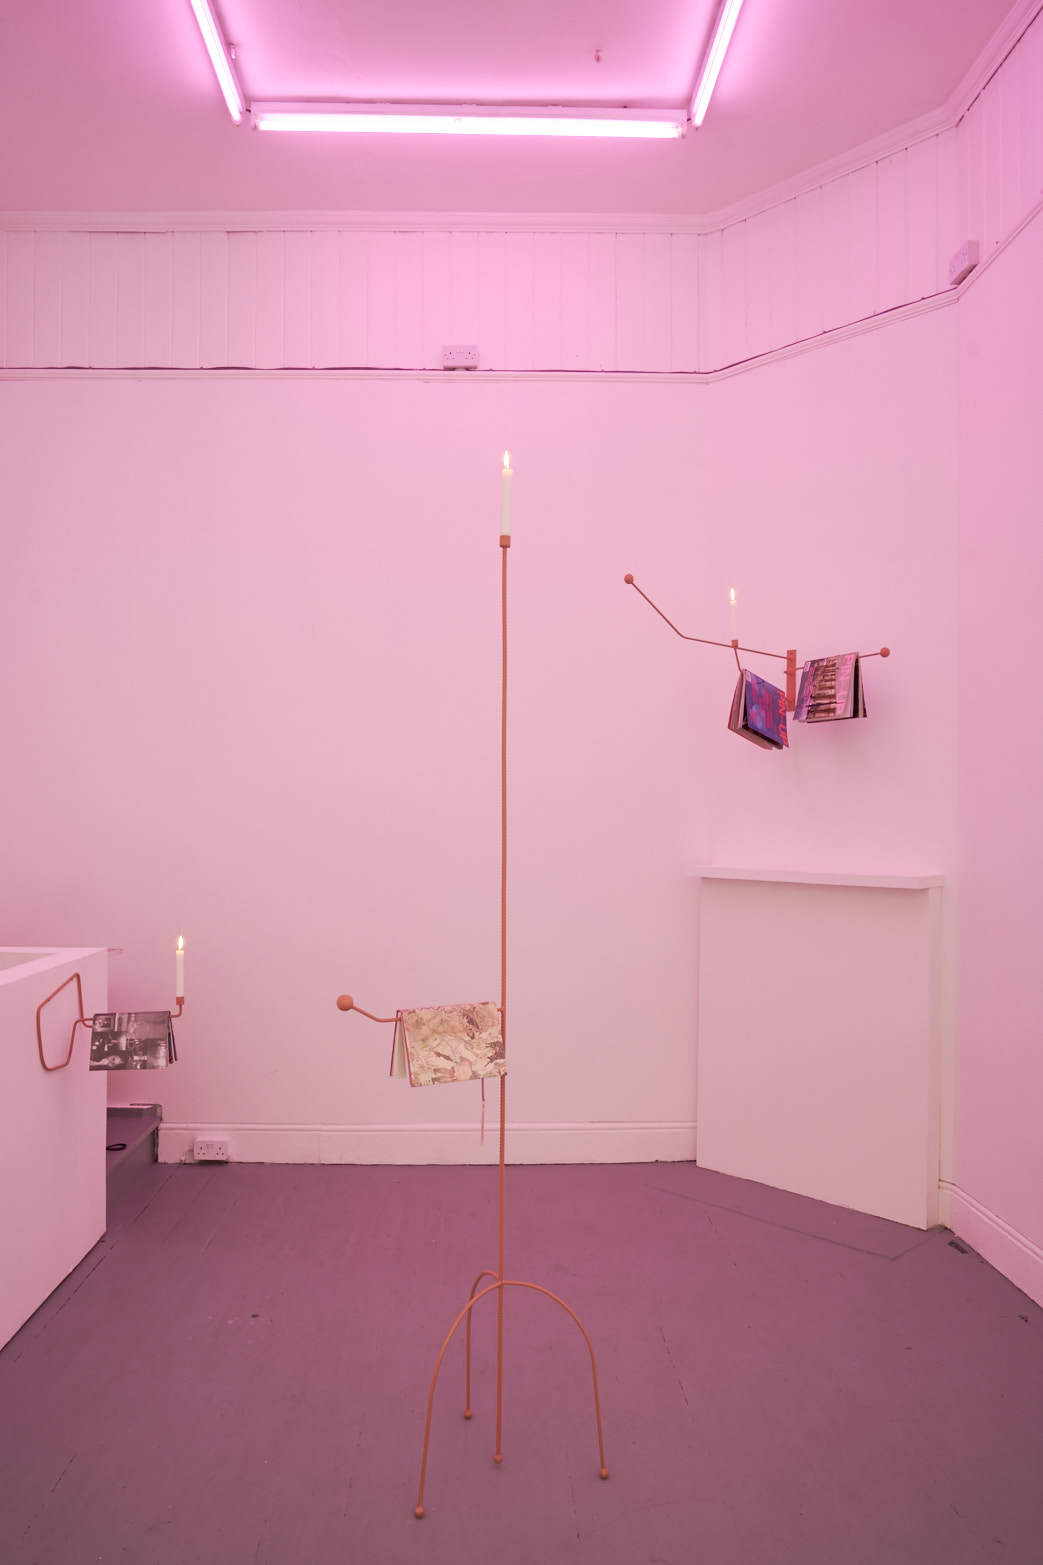 Richard Healy, Lubricants & Literature, 2016. Installation view. Tenderpixel.